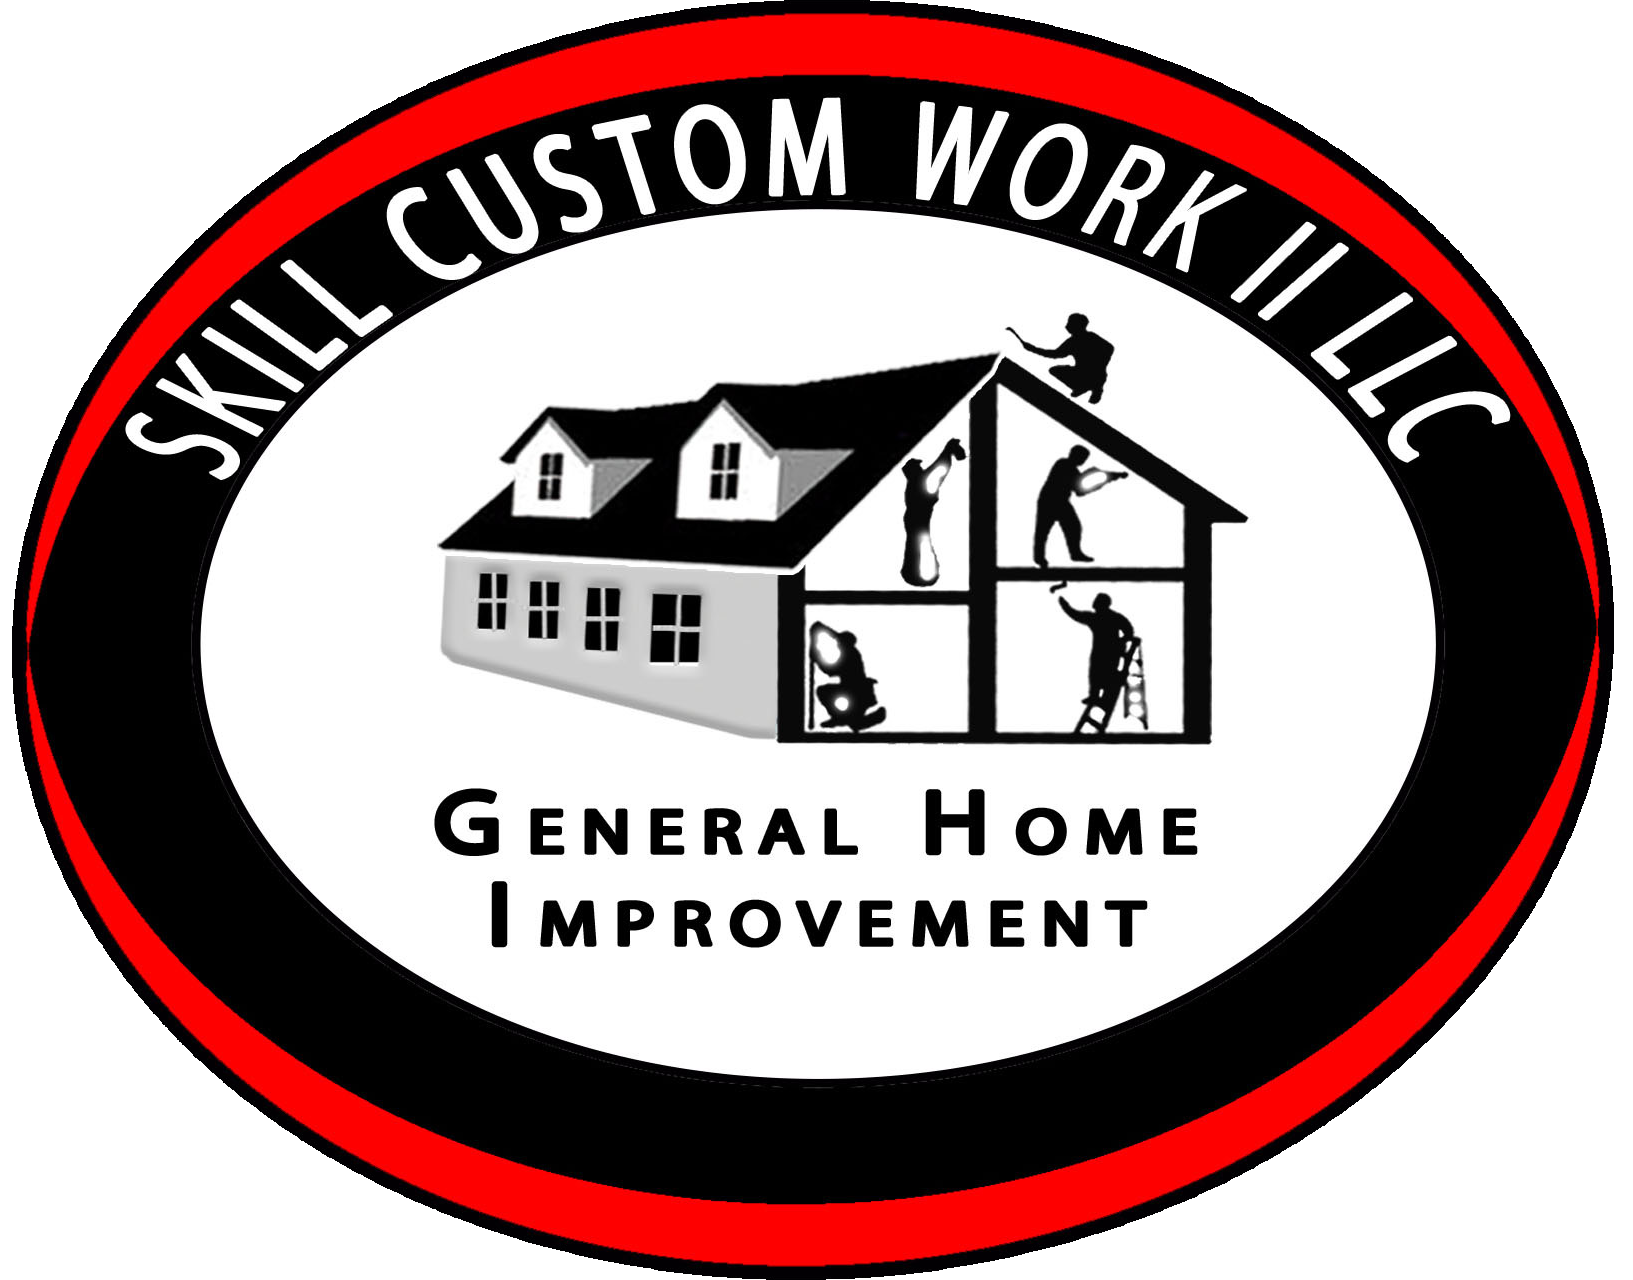 Skill Custom Work 2 LLC's logo